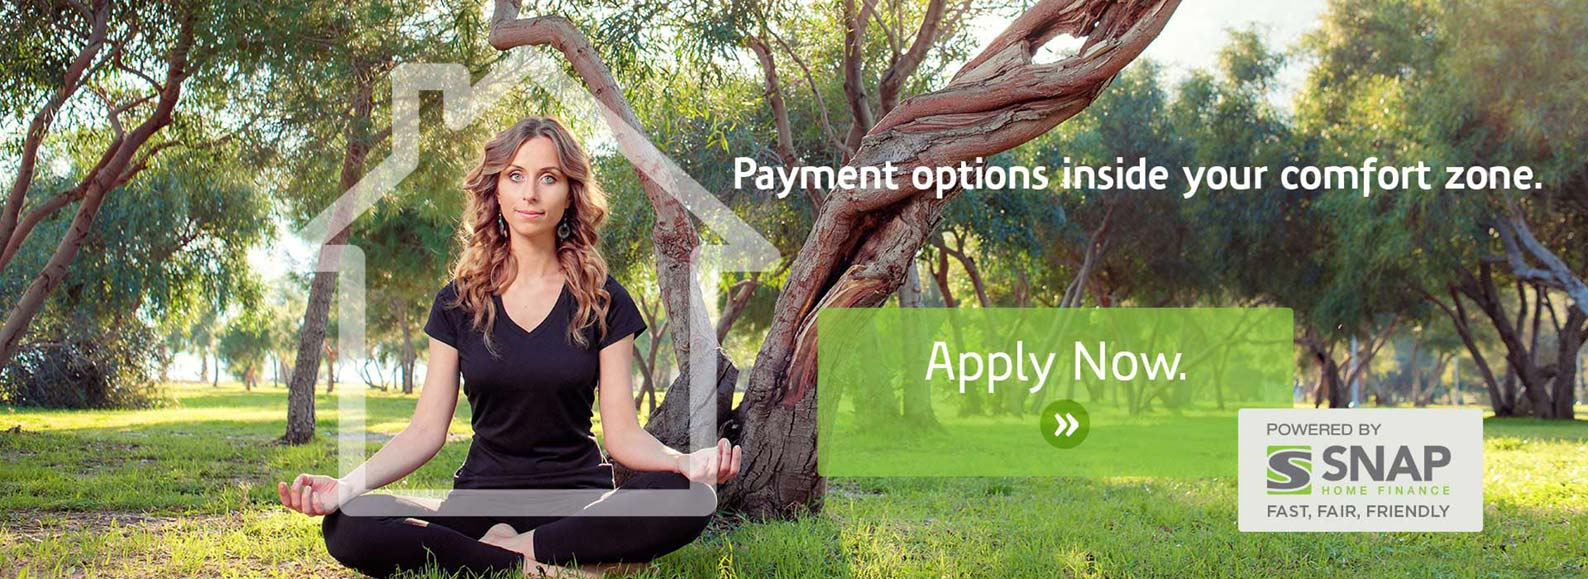 a banner for Snap home financing featuring a woman sitting in a park. Payment options inside your comfort zone. Apply now.